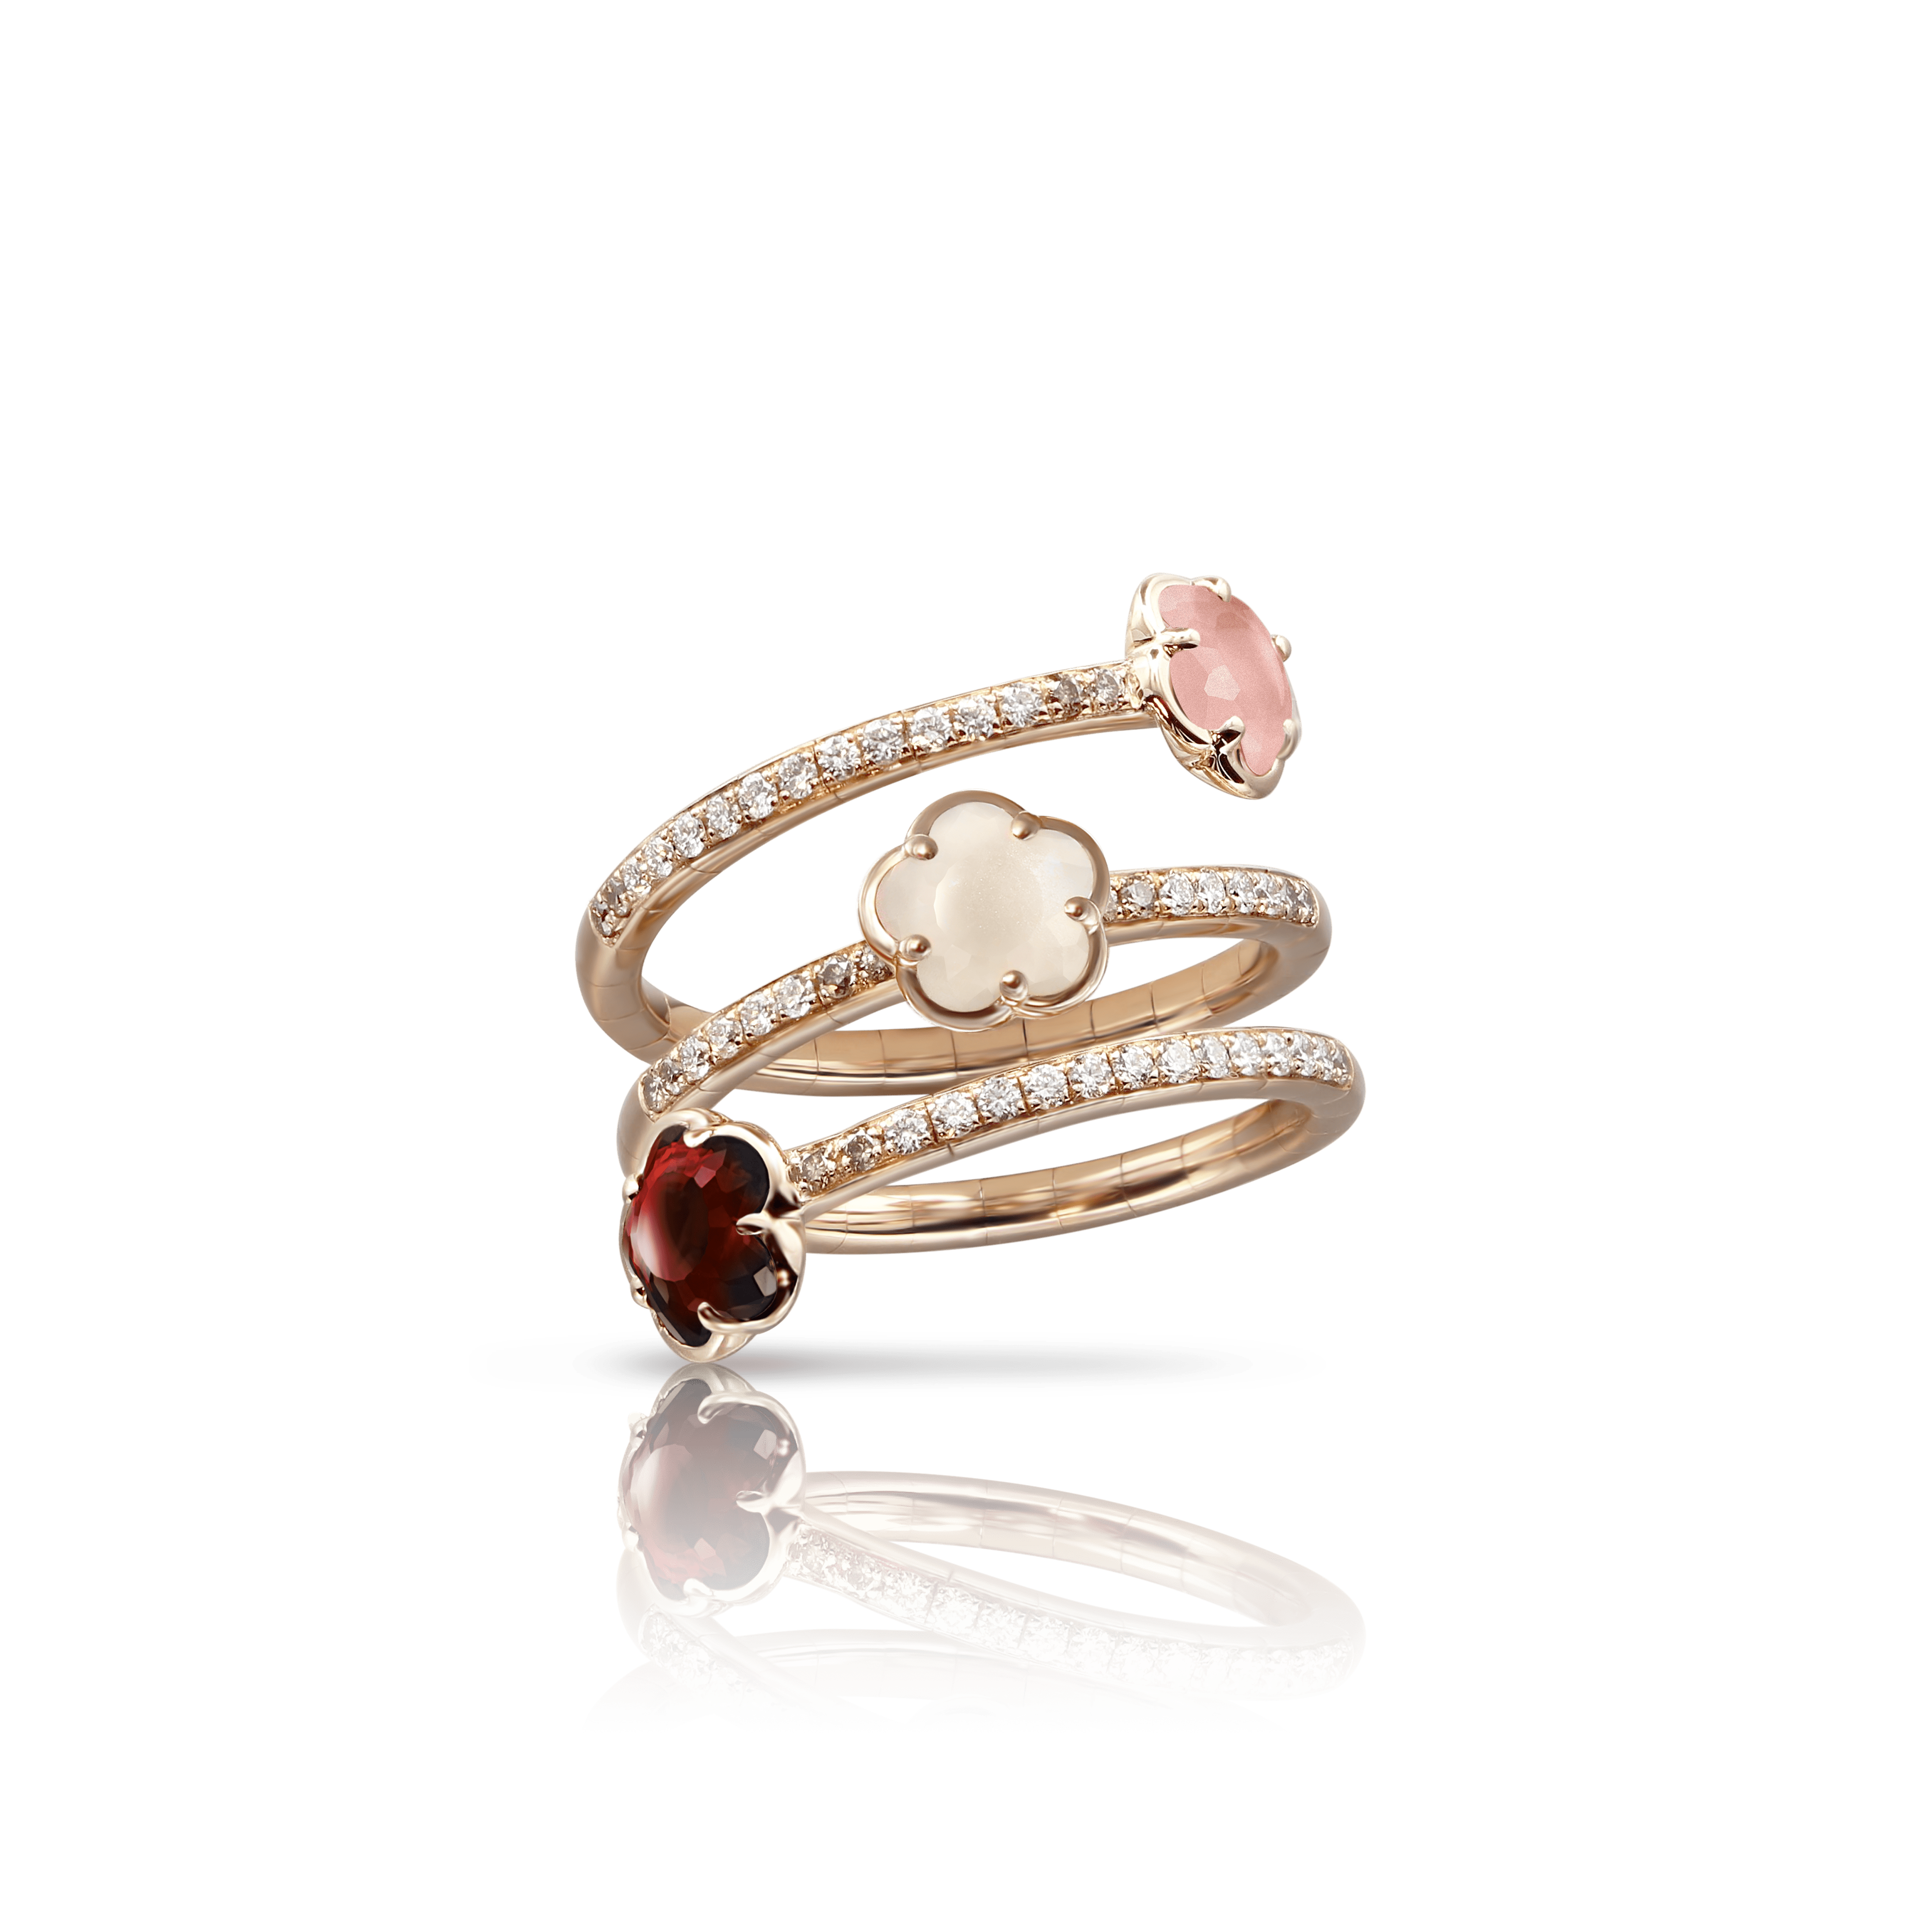 18k Rose Gold Figlia dei Fiori Ring with Pink Chalcedony, Red Garnet, Moonstone, White and Champagne Diamonds